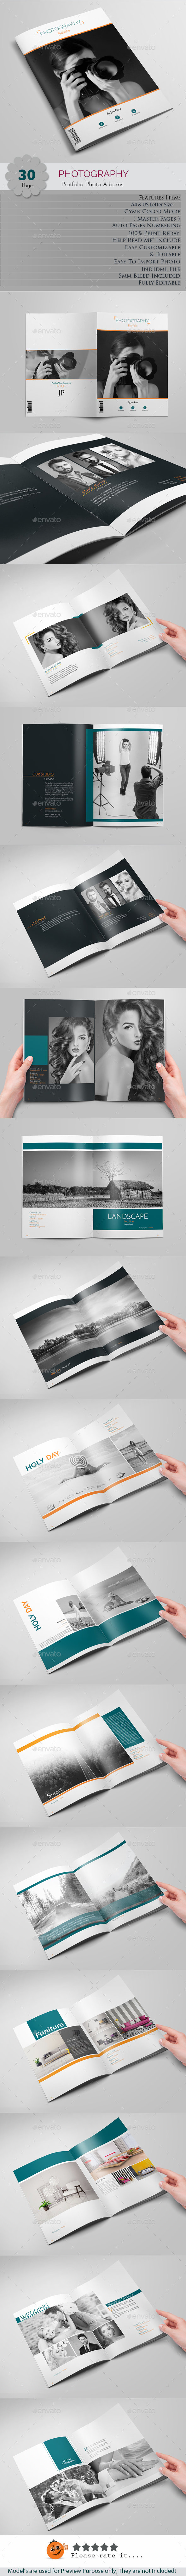 Photography Protfolio - Photo Albums Print Templates